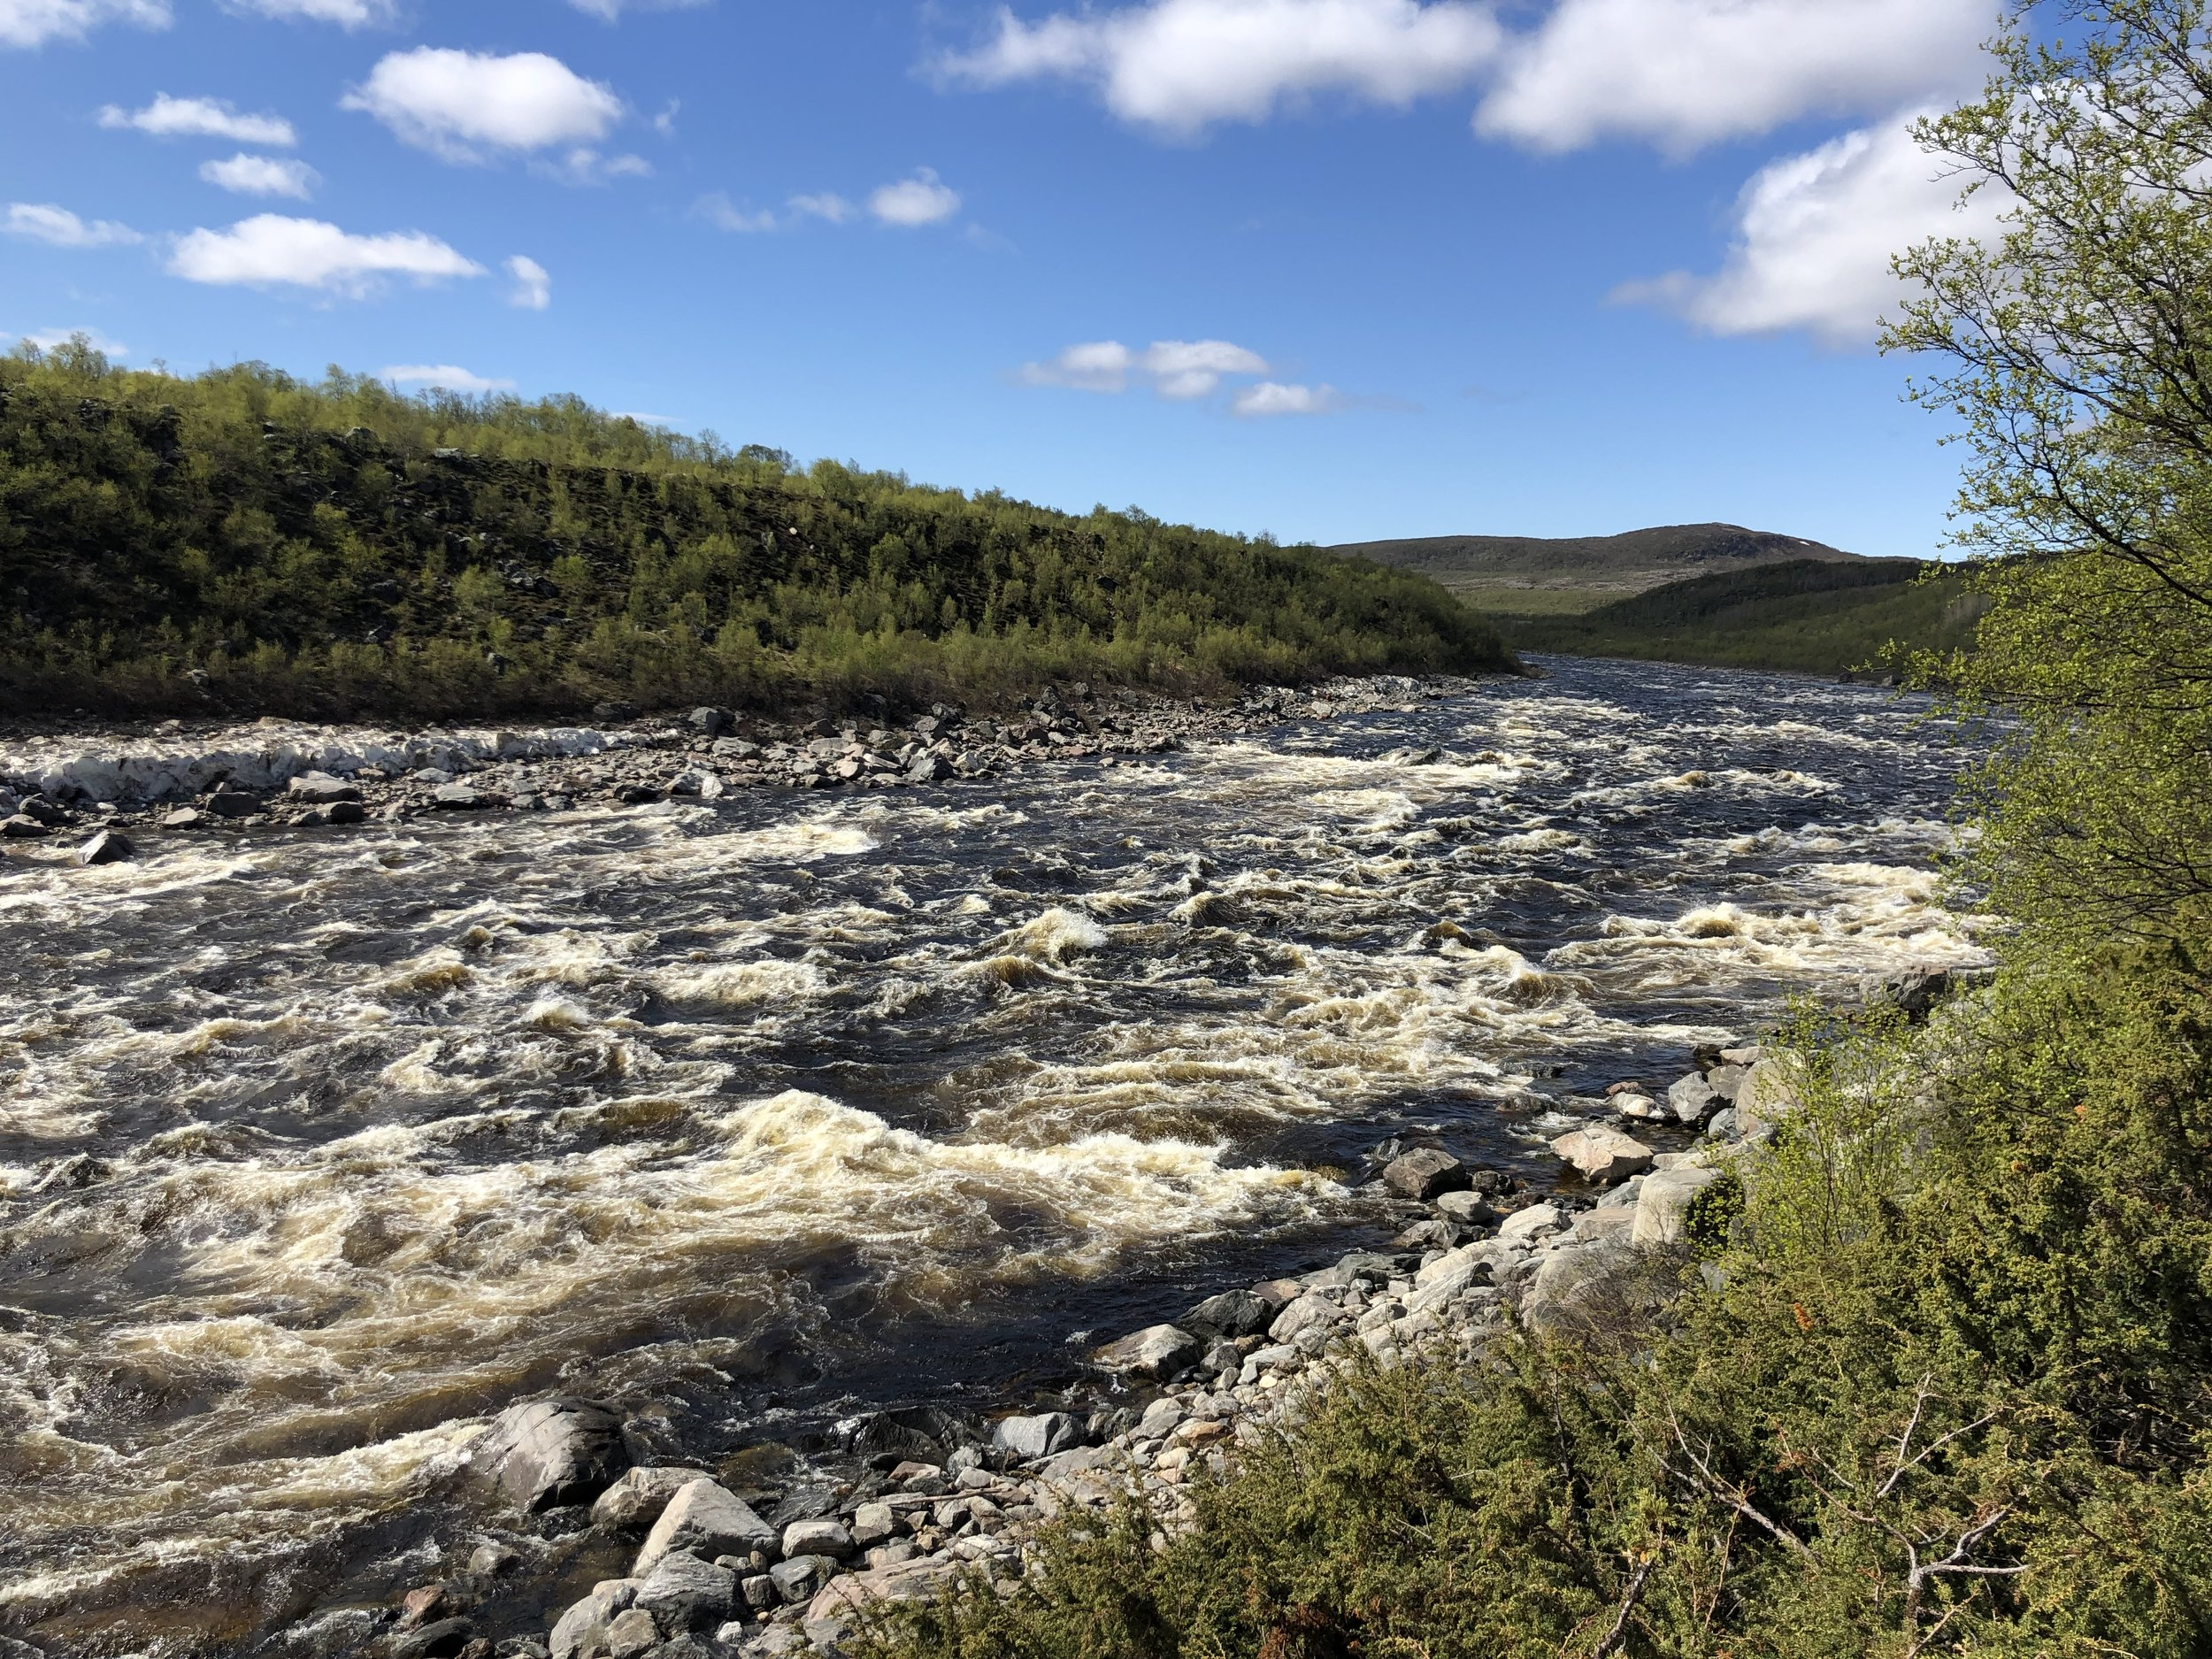 After spending a few days in Finland we decided to head north back into Norway and spend a night in Vardo on the Arctic Ocean. To get to Vardo we followed the Tana River which forms the border between the two countries.  In addition to wild rapids the Tana is also know for its great salmon fishing.